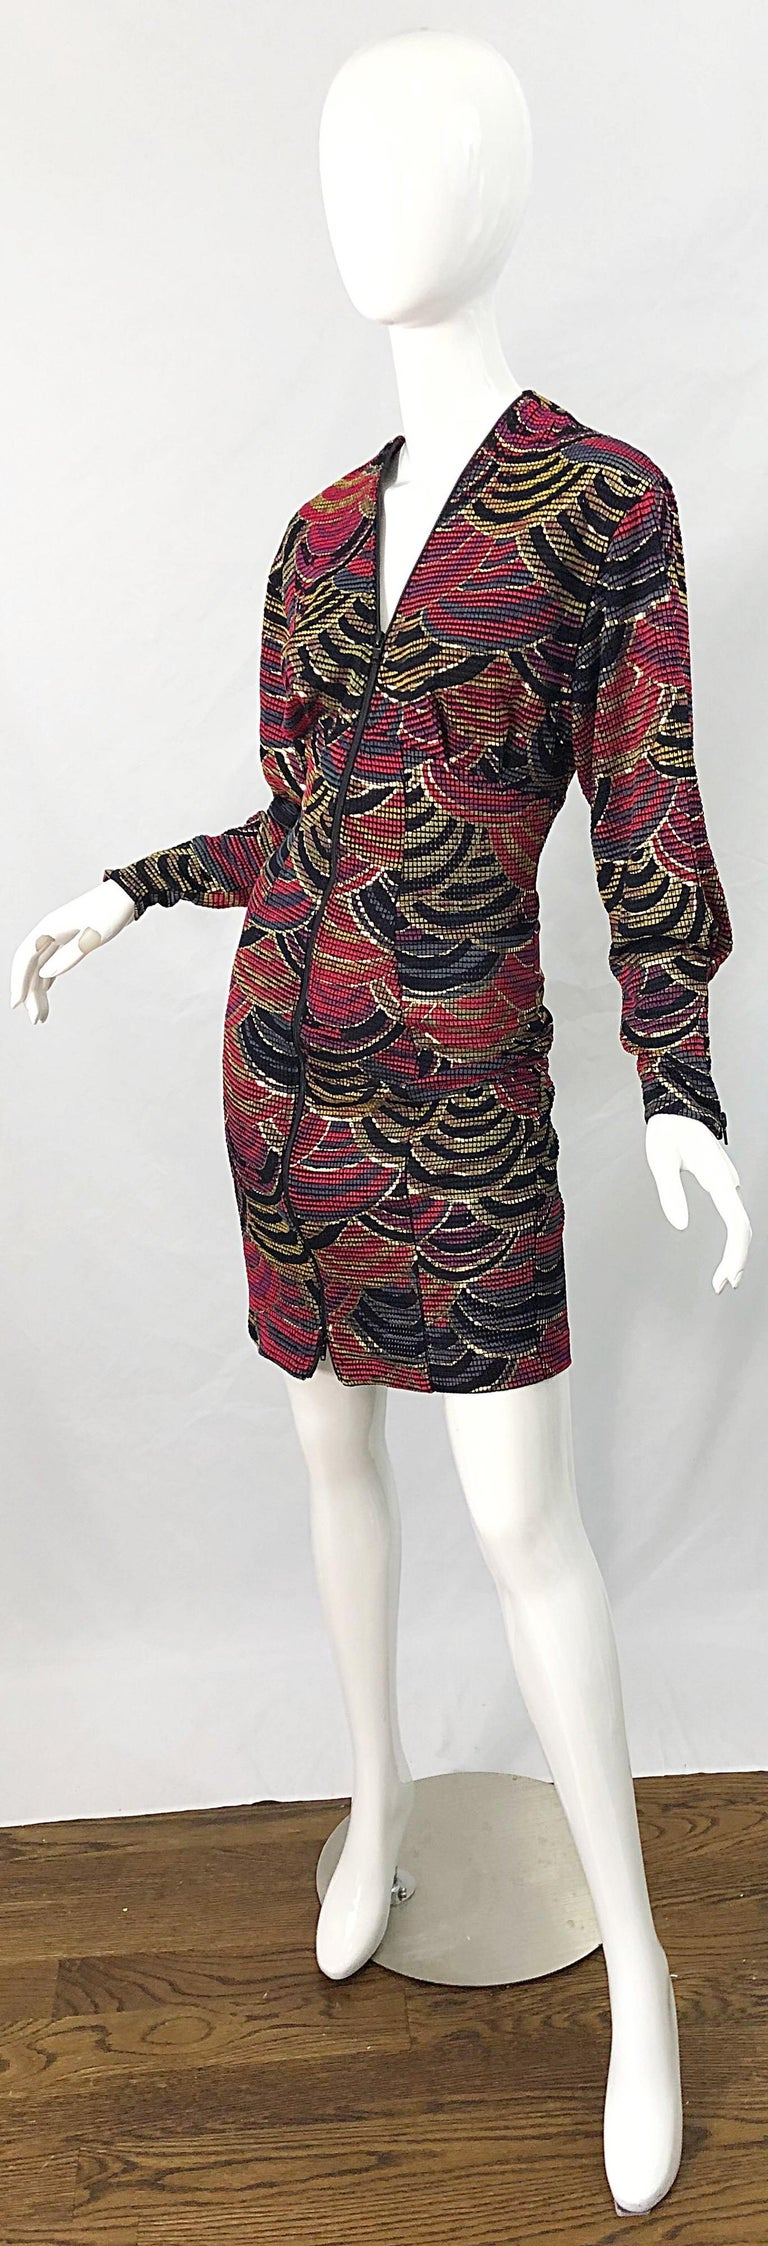 1980s Hand Painted Reversible Red + Gold + Green Vintage 80s Avant Garde Dress For Sale 2